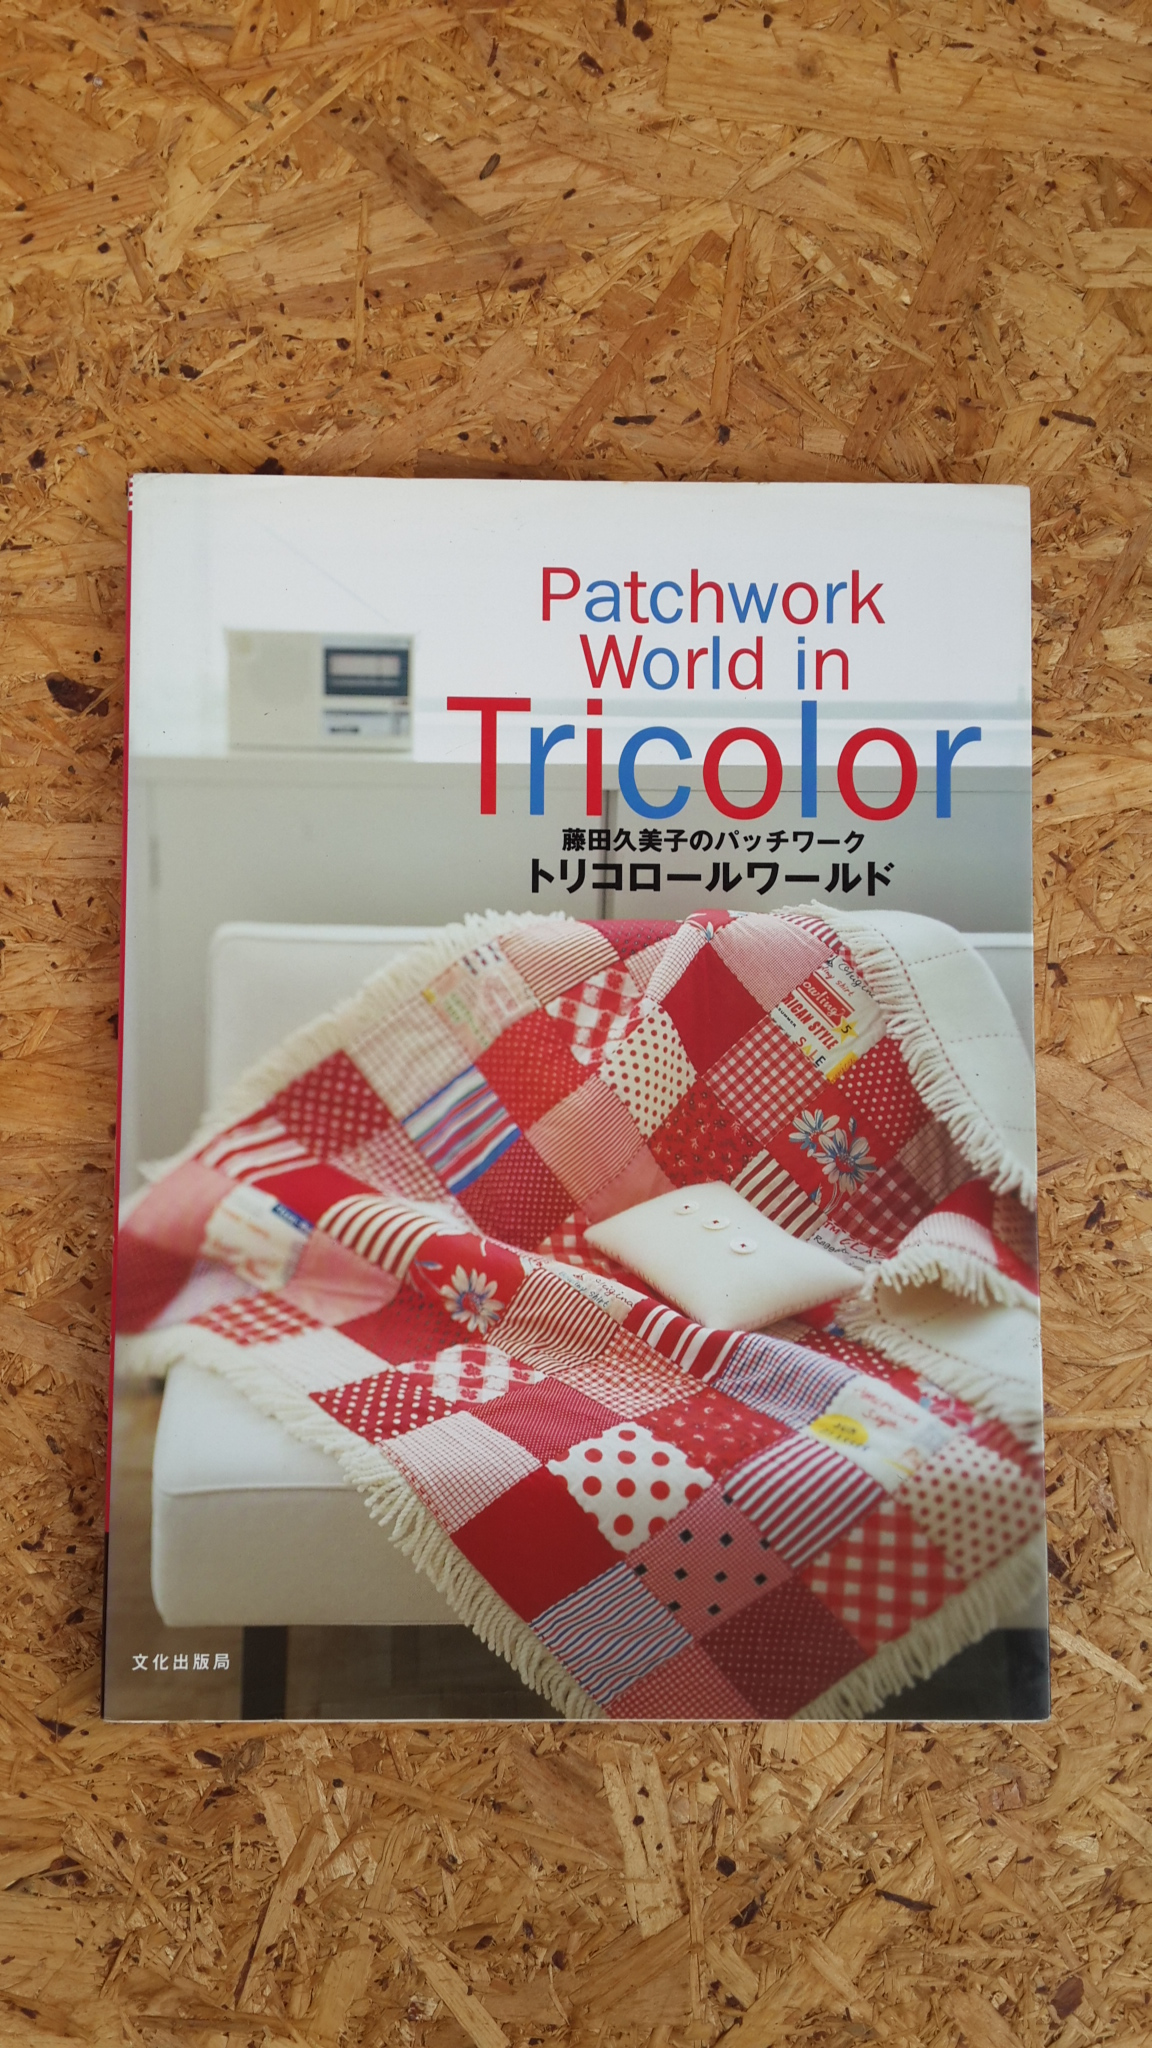 Patchwork World in Tricolor